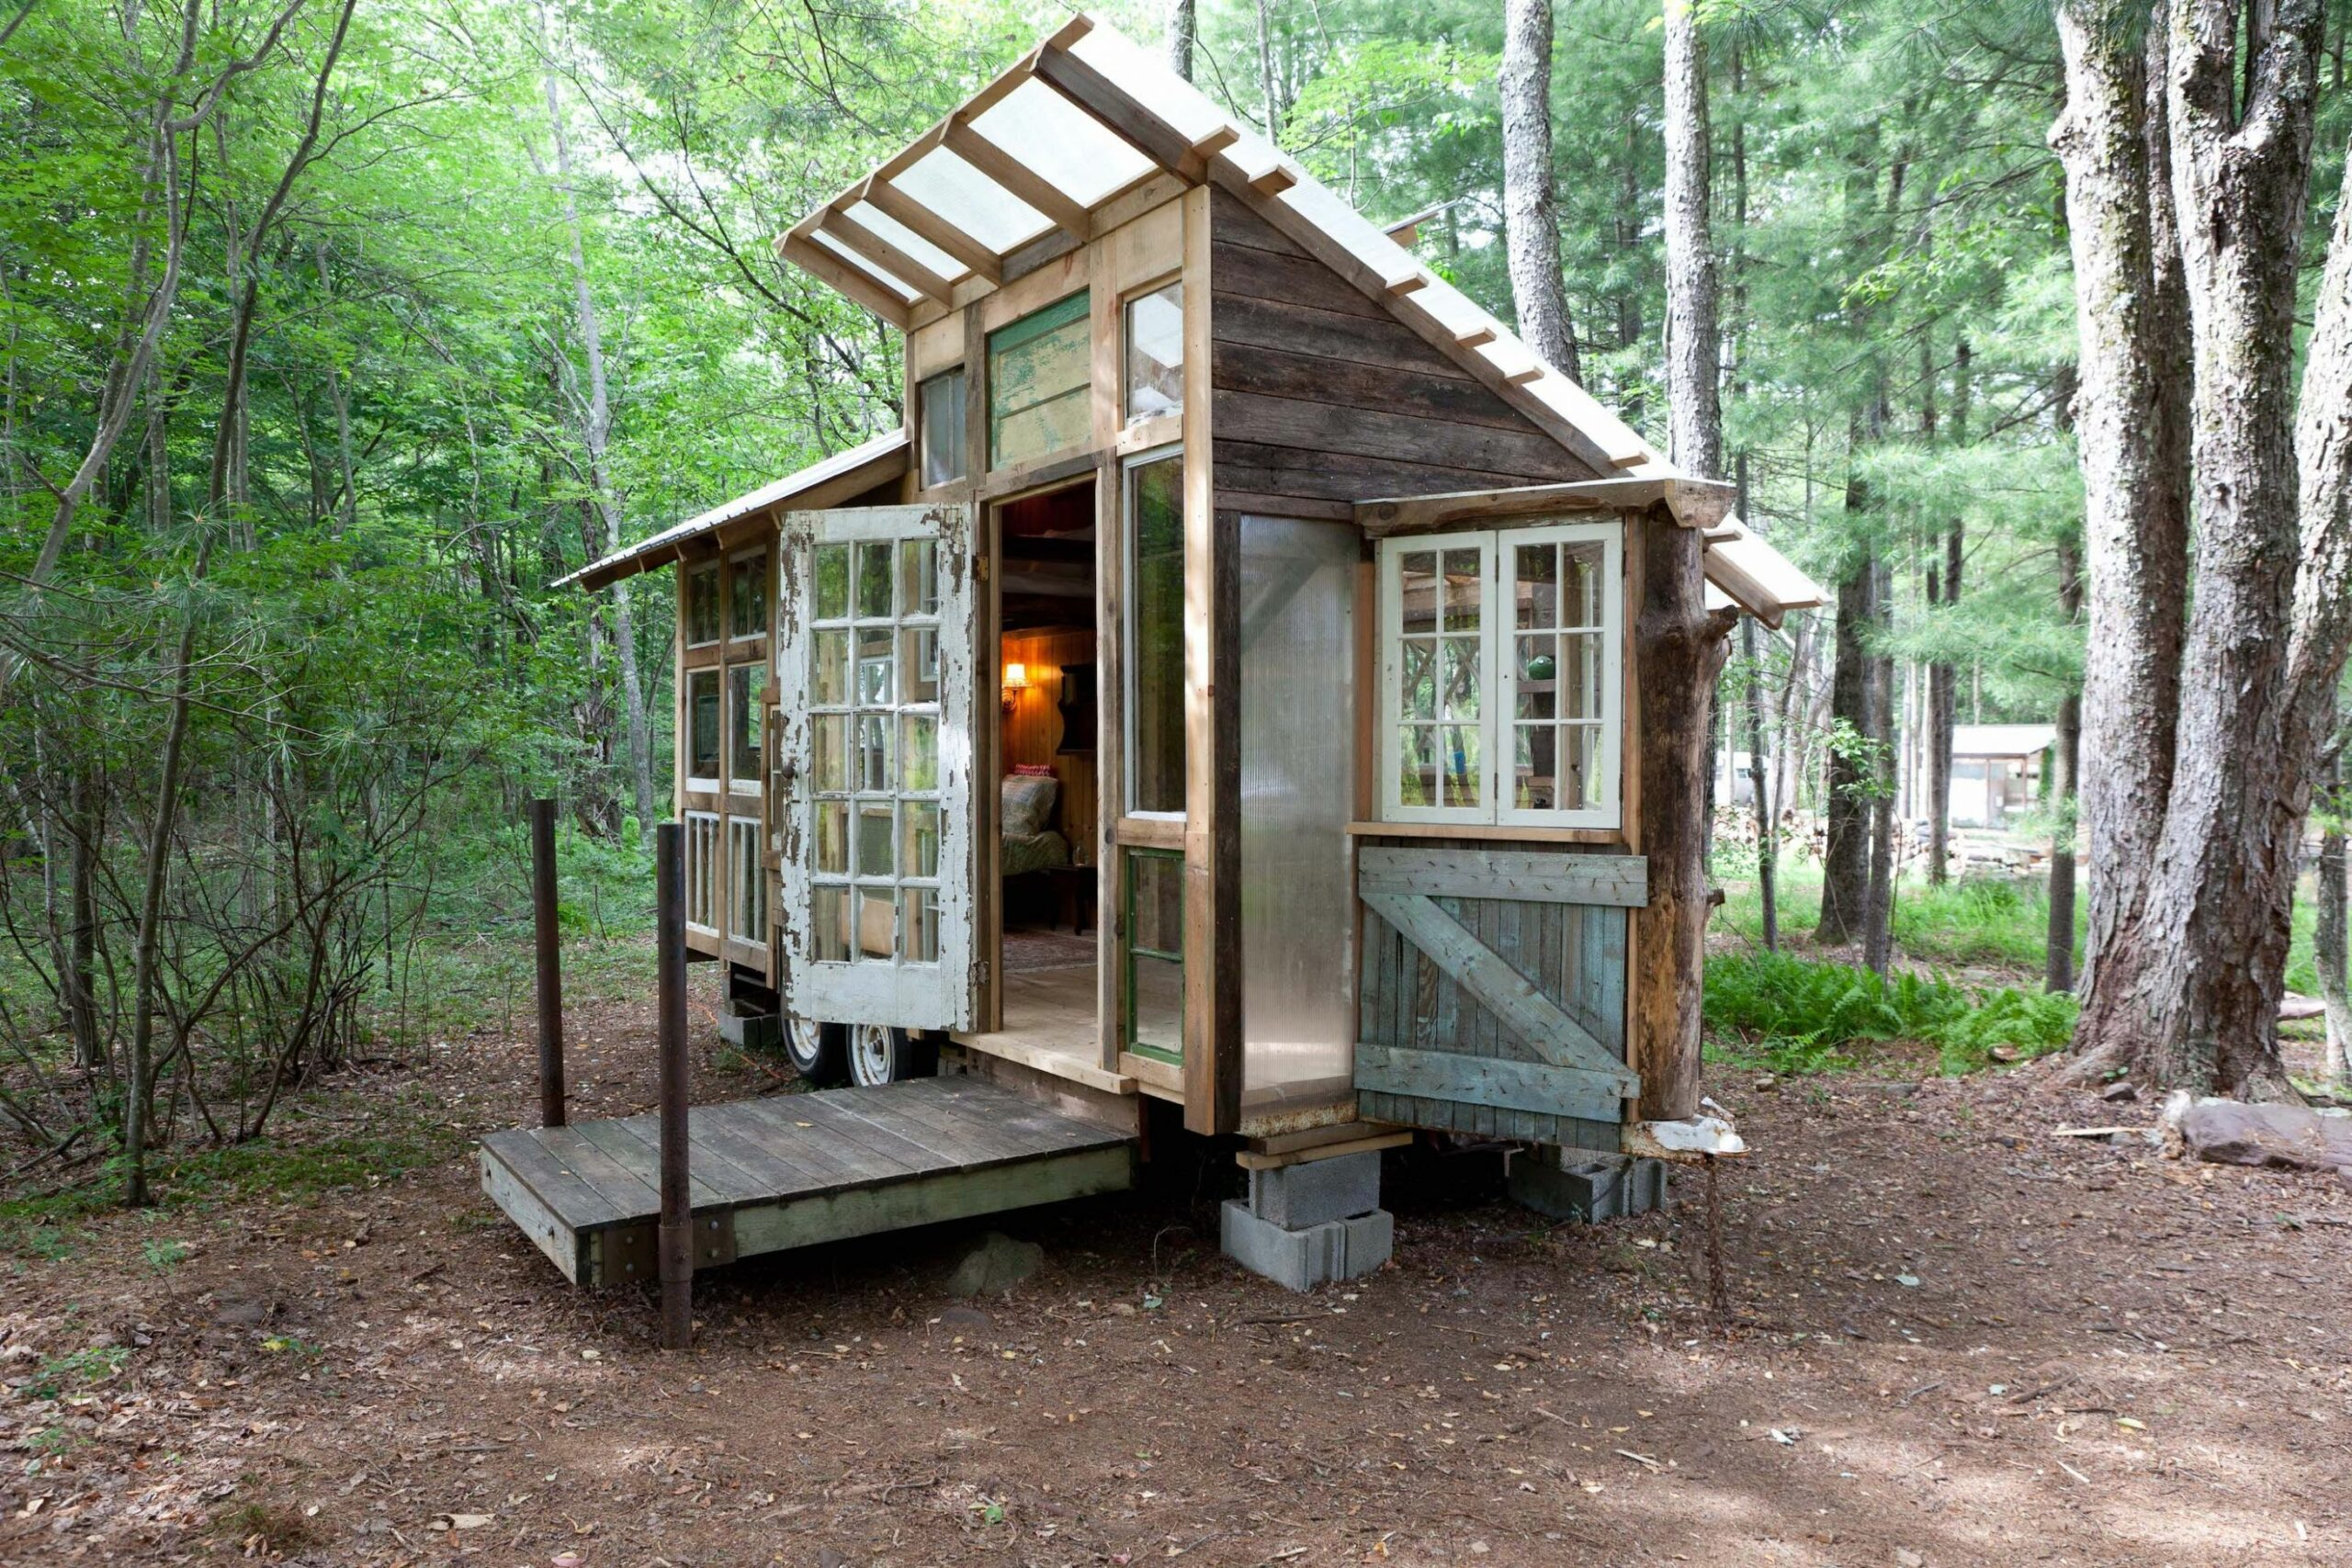 Best Tiny Houses To Rent On Airbnb Across The World - tiny house rent